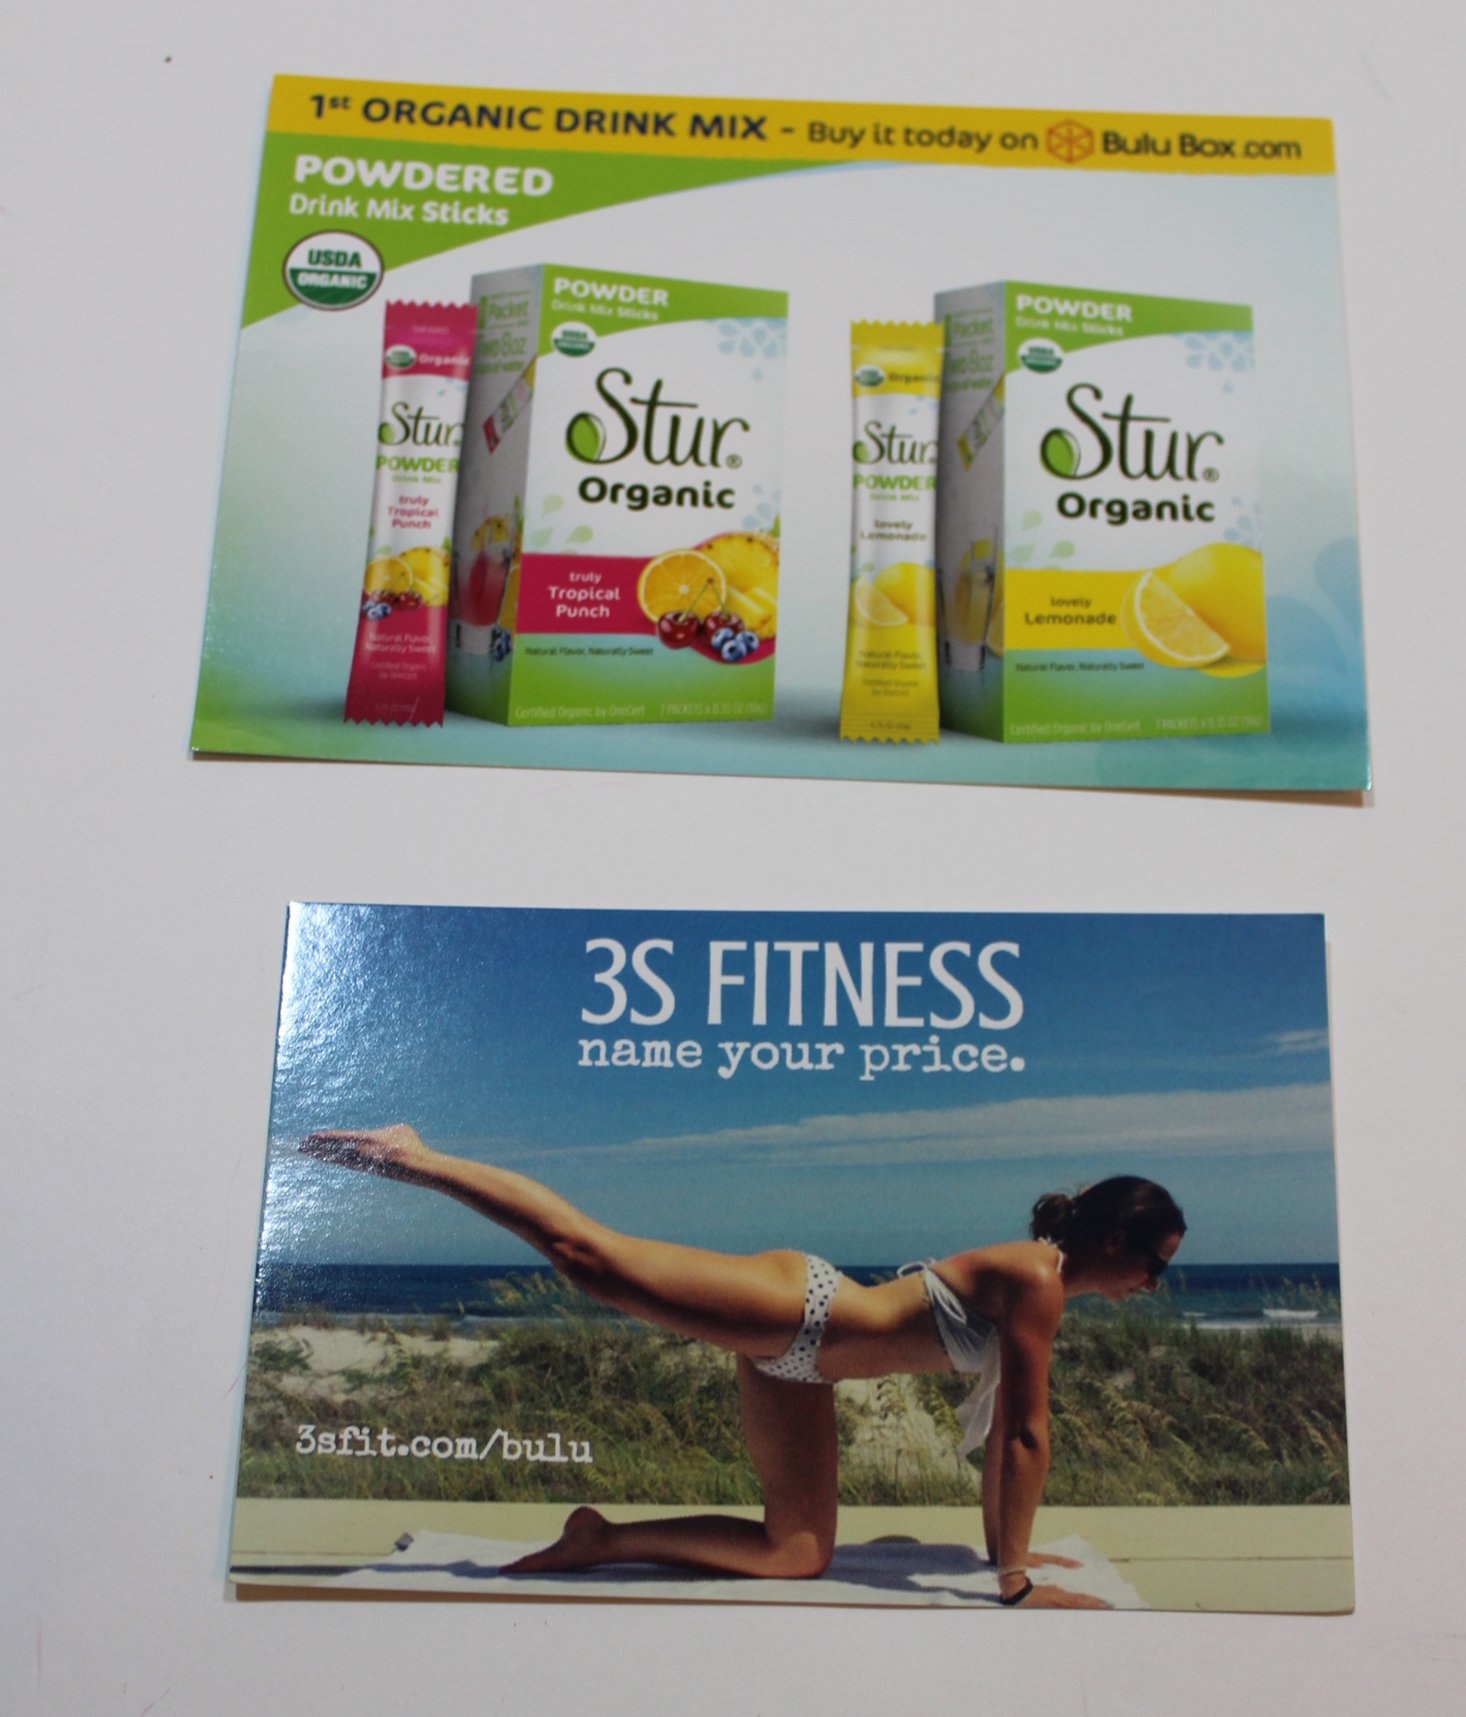 bulu-box-weight-loss-october-2016-coupons